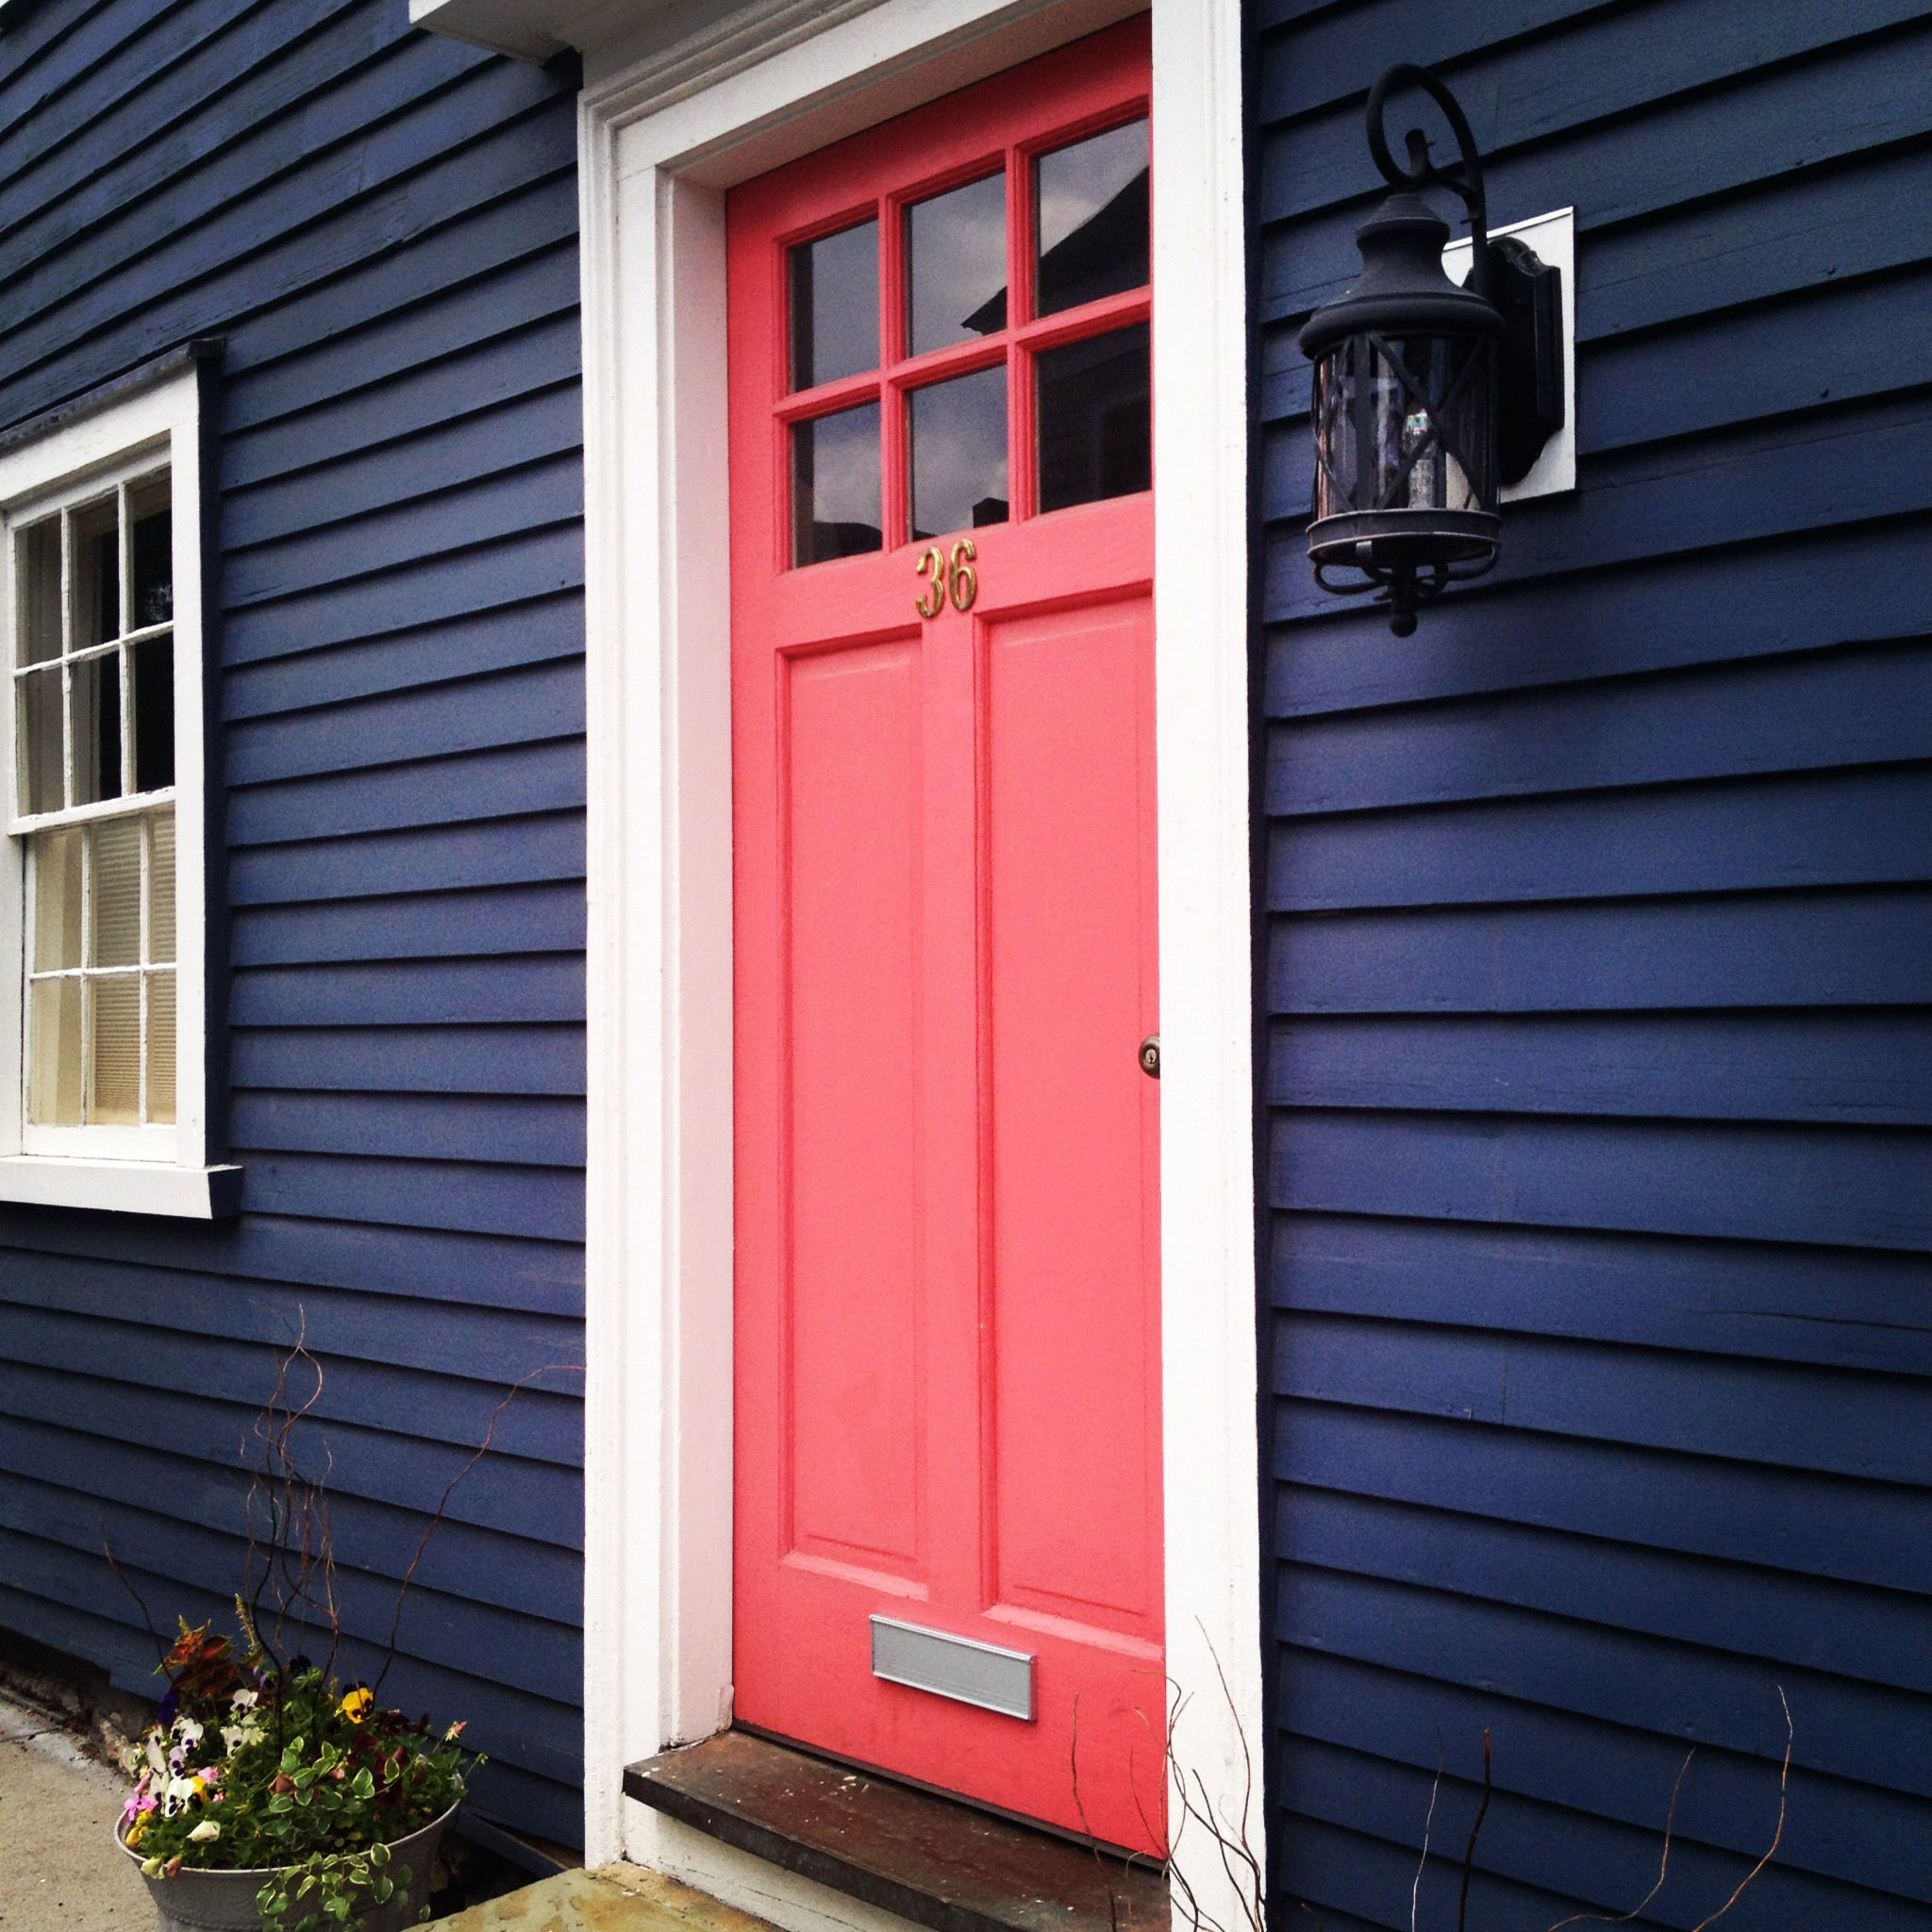 My house is now this blue navy with white trim and trying to decide on splash of color for the door. This coral looks great...a contender!